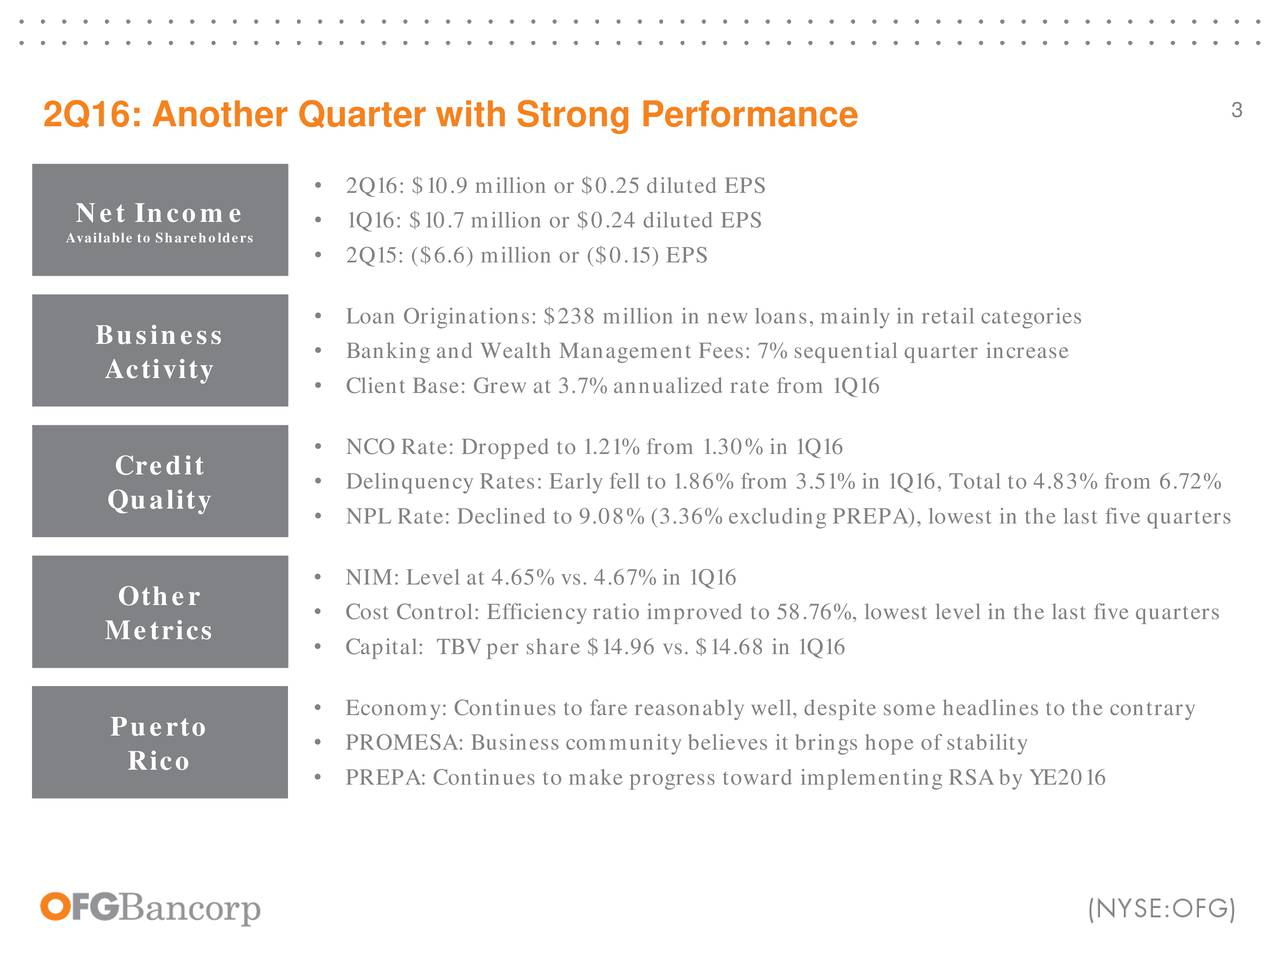 2Q16: Another Quarter with Strong Performance 2Q16: $10.9 million or $0.25 diluted EPS Net Income  1Q16: $10.7 million or $0.24 diluted EPS Available to Shareholder 2Q15: ($6.6) million or ($0.15) EPS Loan Originations: $238 million in new loans, mainly in retail categories Business Banking and Wealth Management Fees: 7% sequential quarter increase Activity  Client Base: Grew at 3.7% annualized rate from 1Q16 NCO Rate: Dropped to 1.21% from 1.30% in 1Q16 Credit  Delinquency Rates: Early fell to 1.86% from 3.51% in 1Q16, Total to 4.83% from 6.72% Quality NPL Rate: Declined to 9.08% (3.36% excluding PREPA), lowest in the last five quarters Other  NIM: Level at 4.65% vs. 4.67% in 1Q16 Cost Control: Efficiency ratio improved to 58.76%, lowest level in the last five quarters Metrics Capital: TBV per share $14.96 vs. $14.68 in 1Q16 Economy: Continues to fare reasonably well, despite some headlines to the contrary Puerto PROMESA: Business community believes it brings hope of stability Rico  PREPA: Continues to make progress toward implementing RSA by YE2016